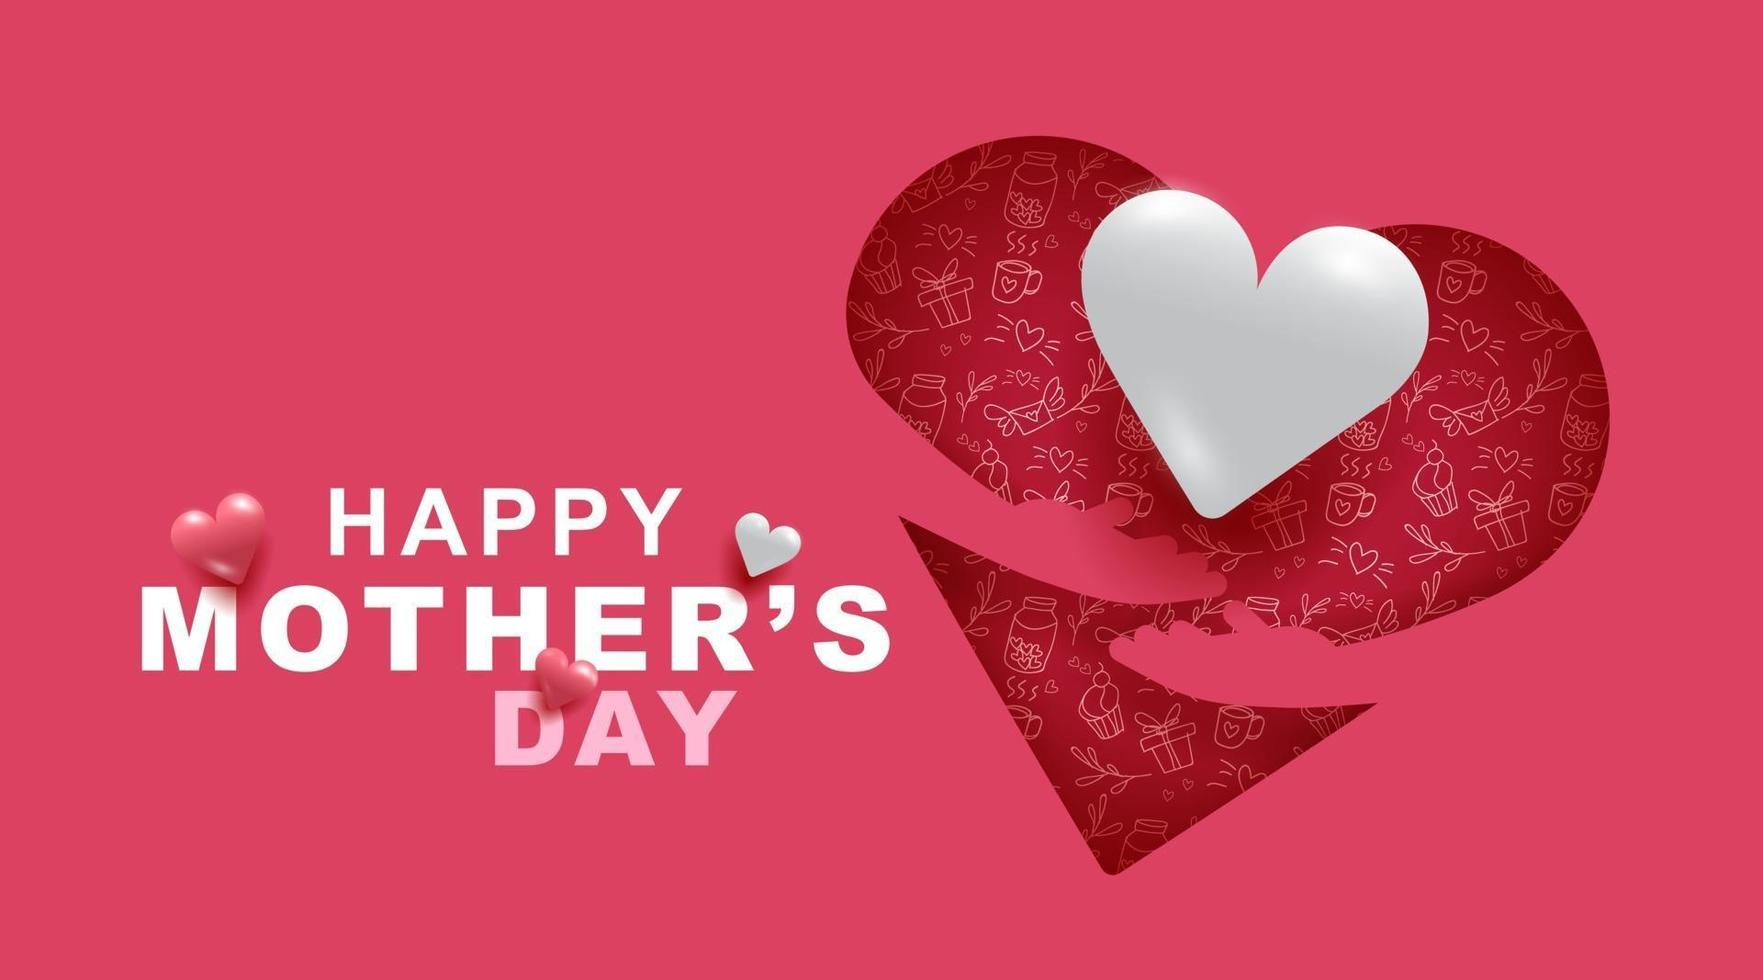 Mothers day greeting card with Heart and love pattern and pink color background vector